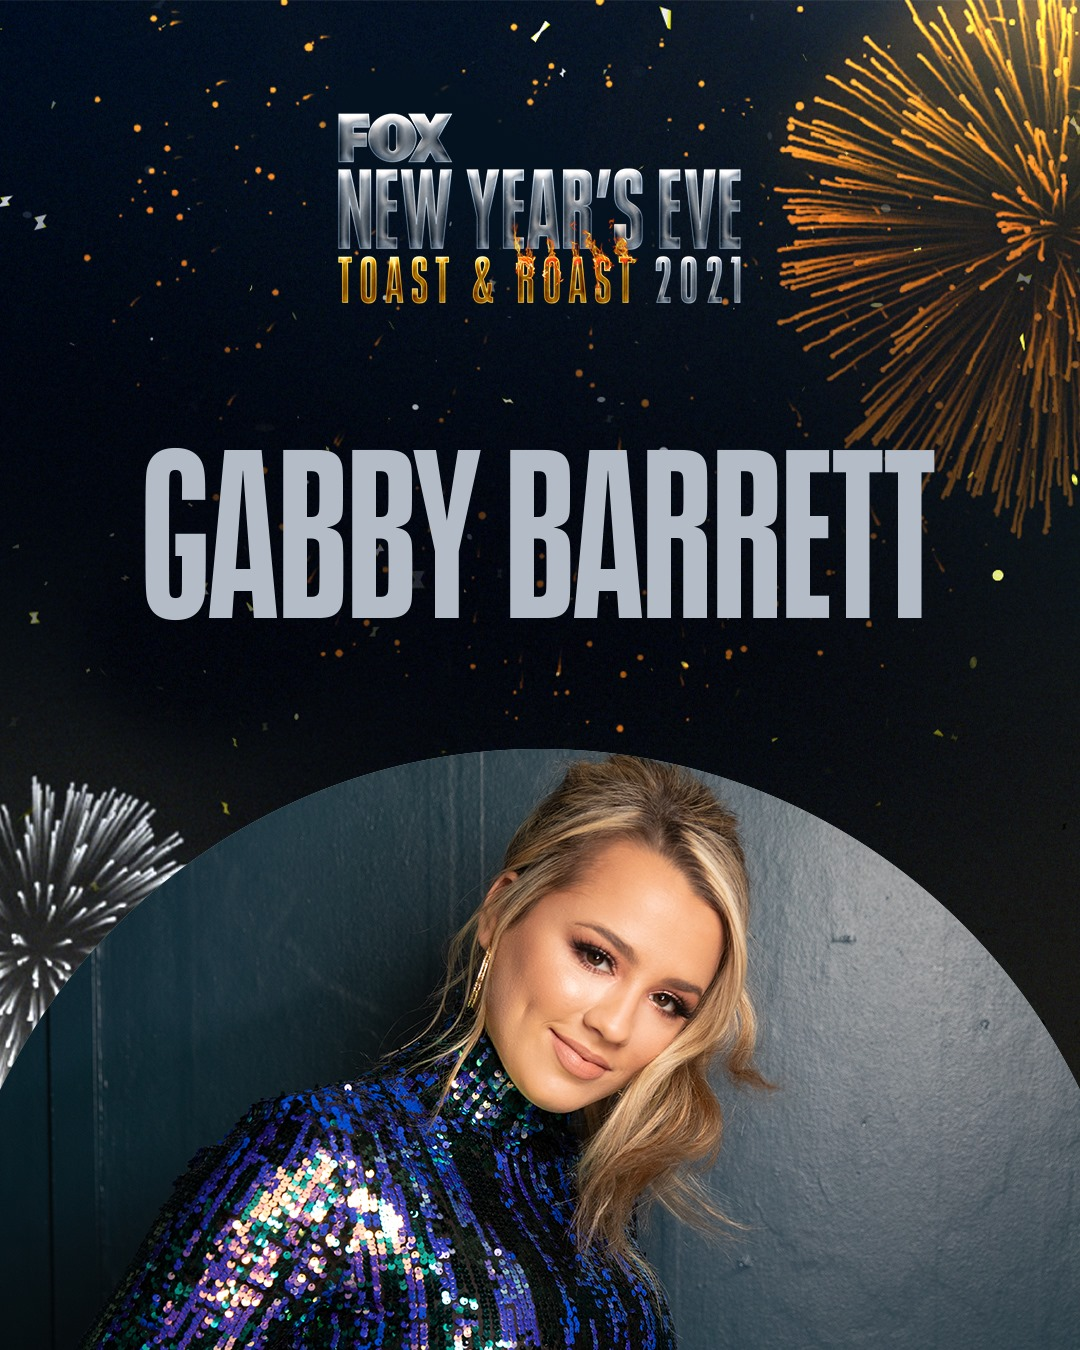 Gabby Barrett to Perform on FOX'S NEW YEARS EVE TOAST & ROAST 2021